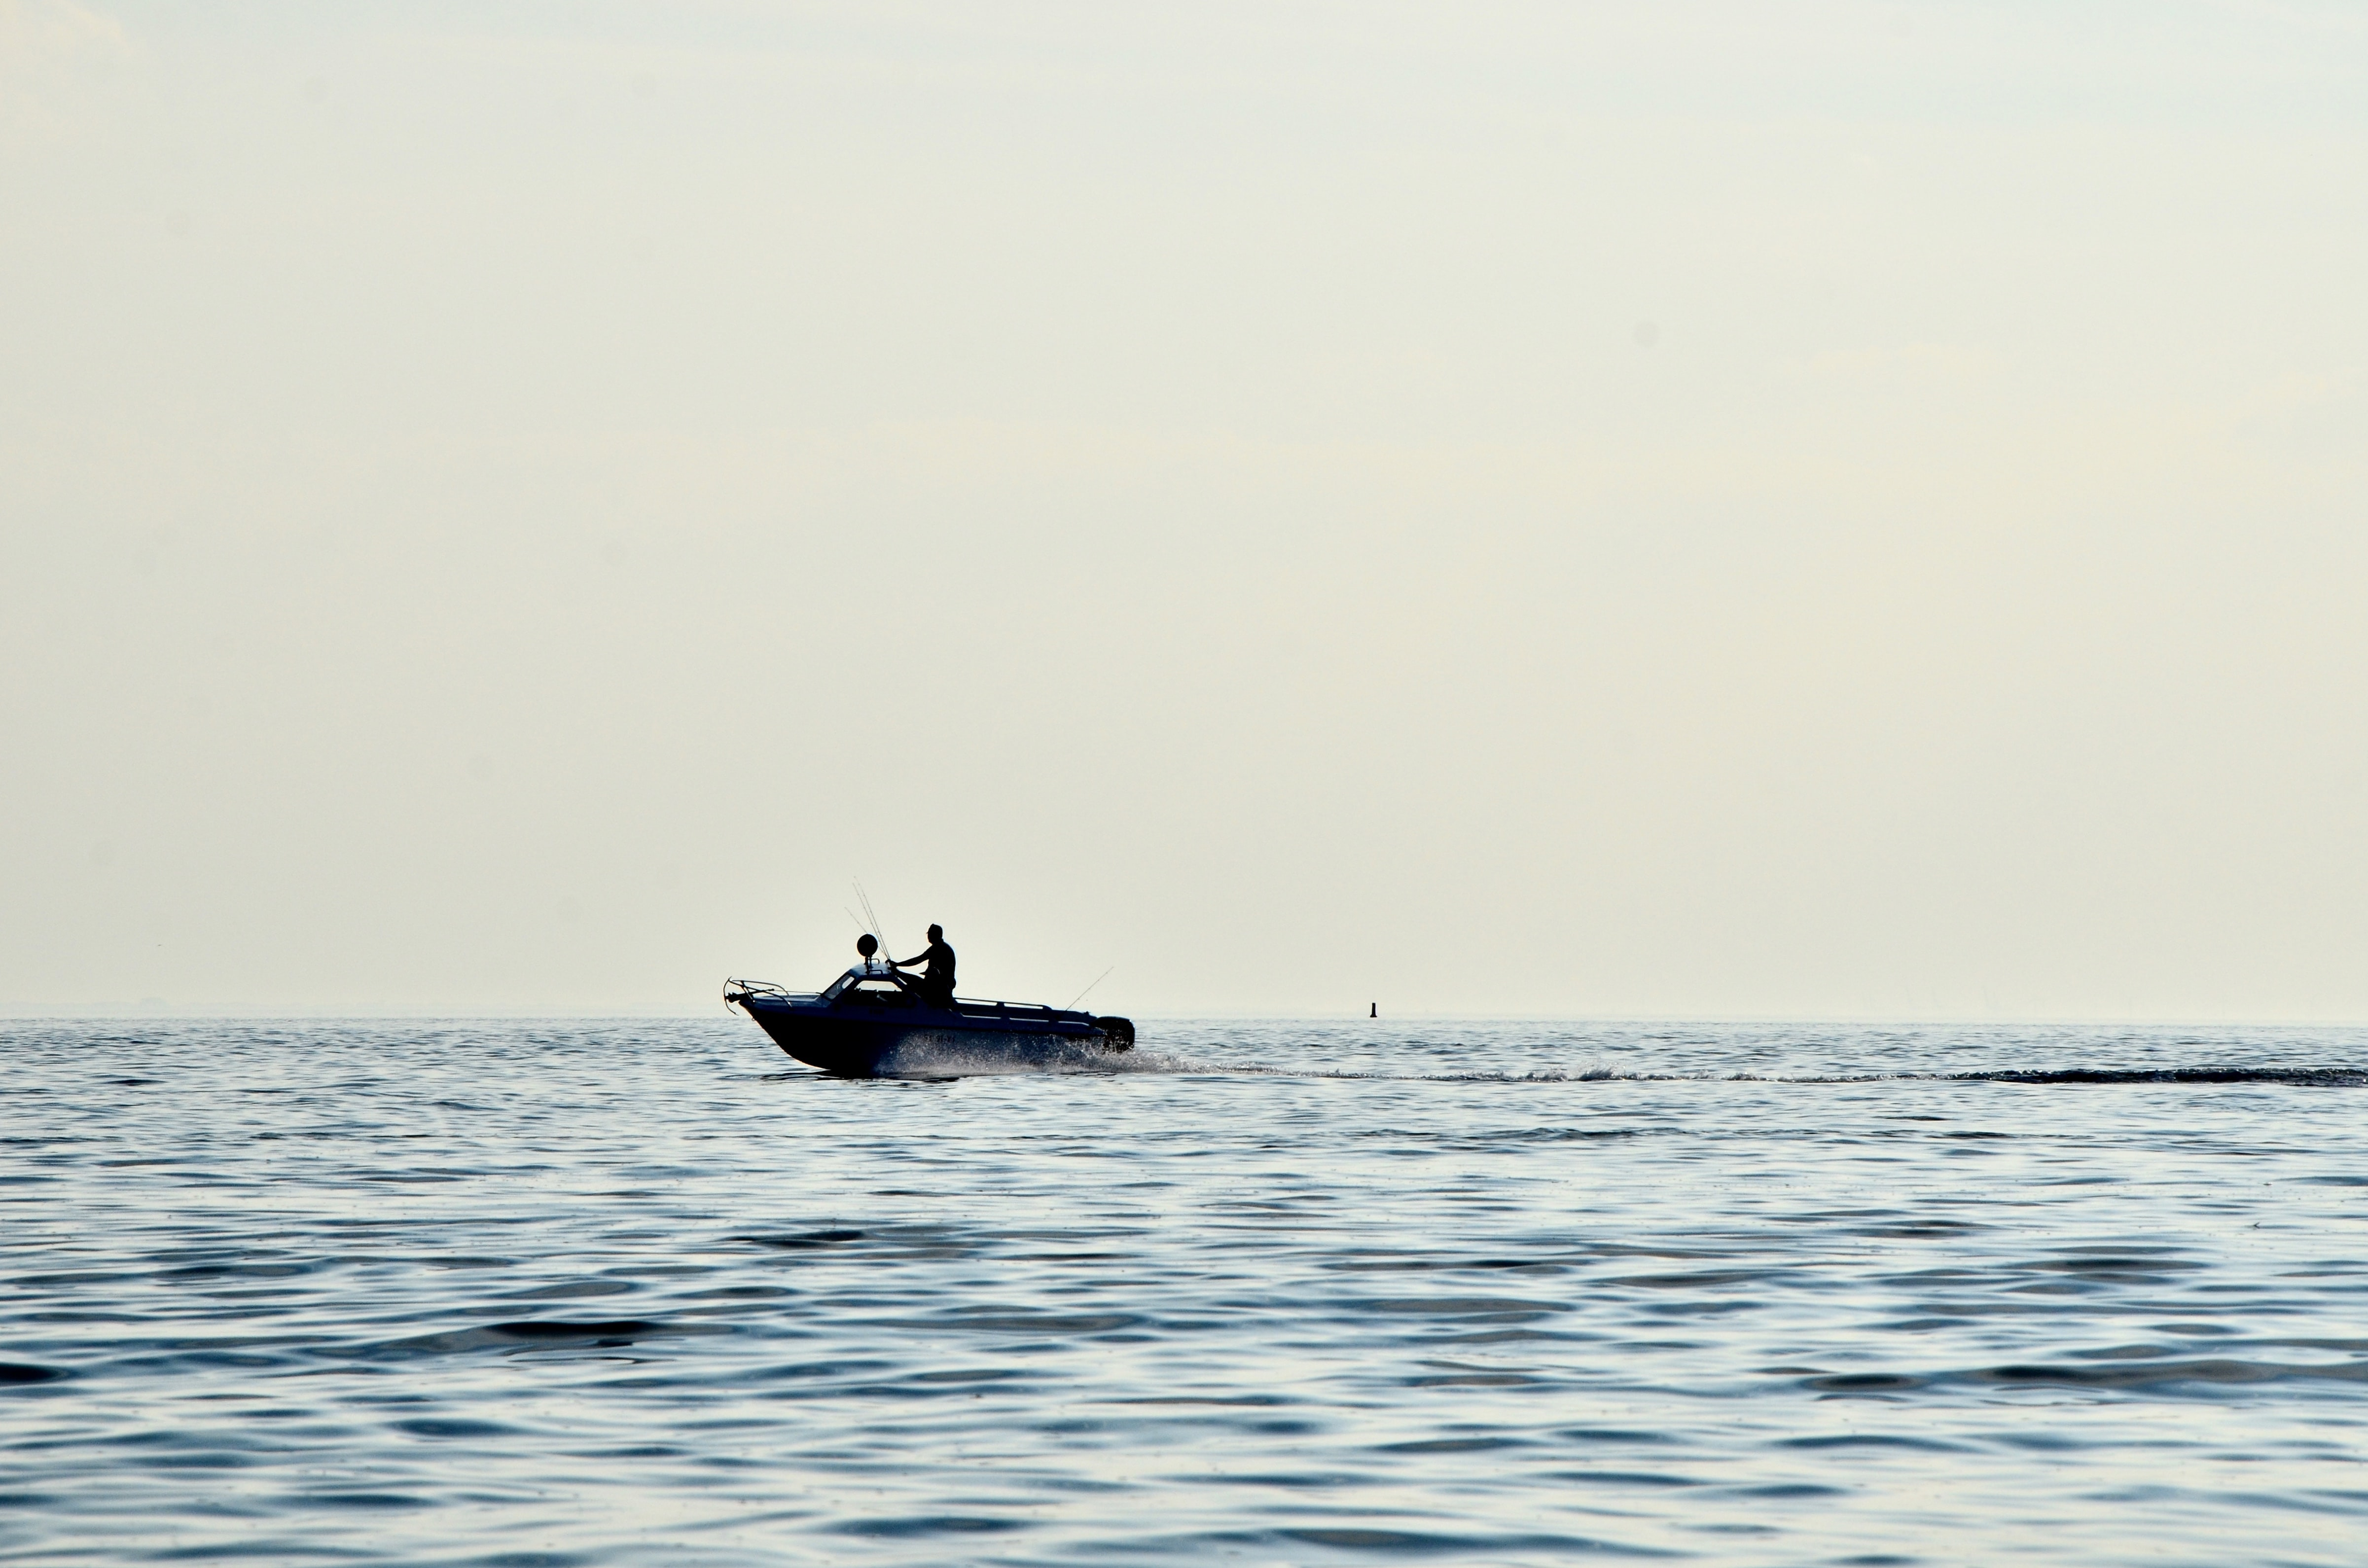 person driving speedboat on sea